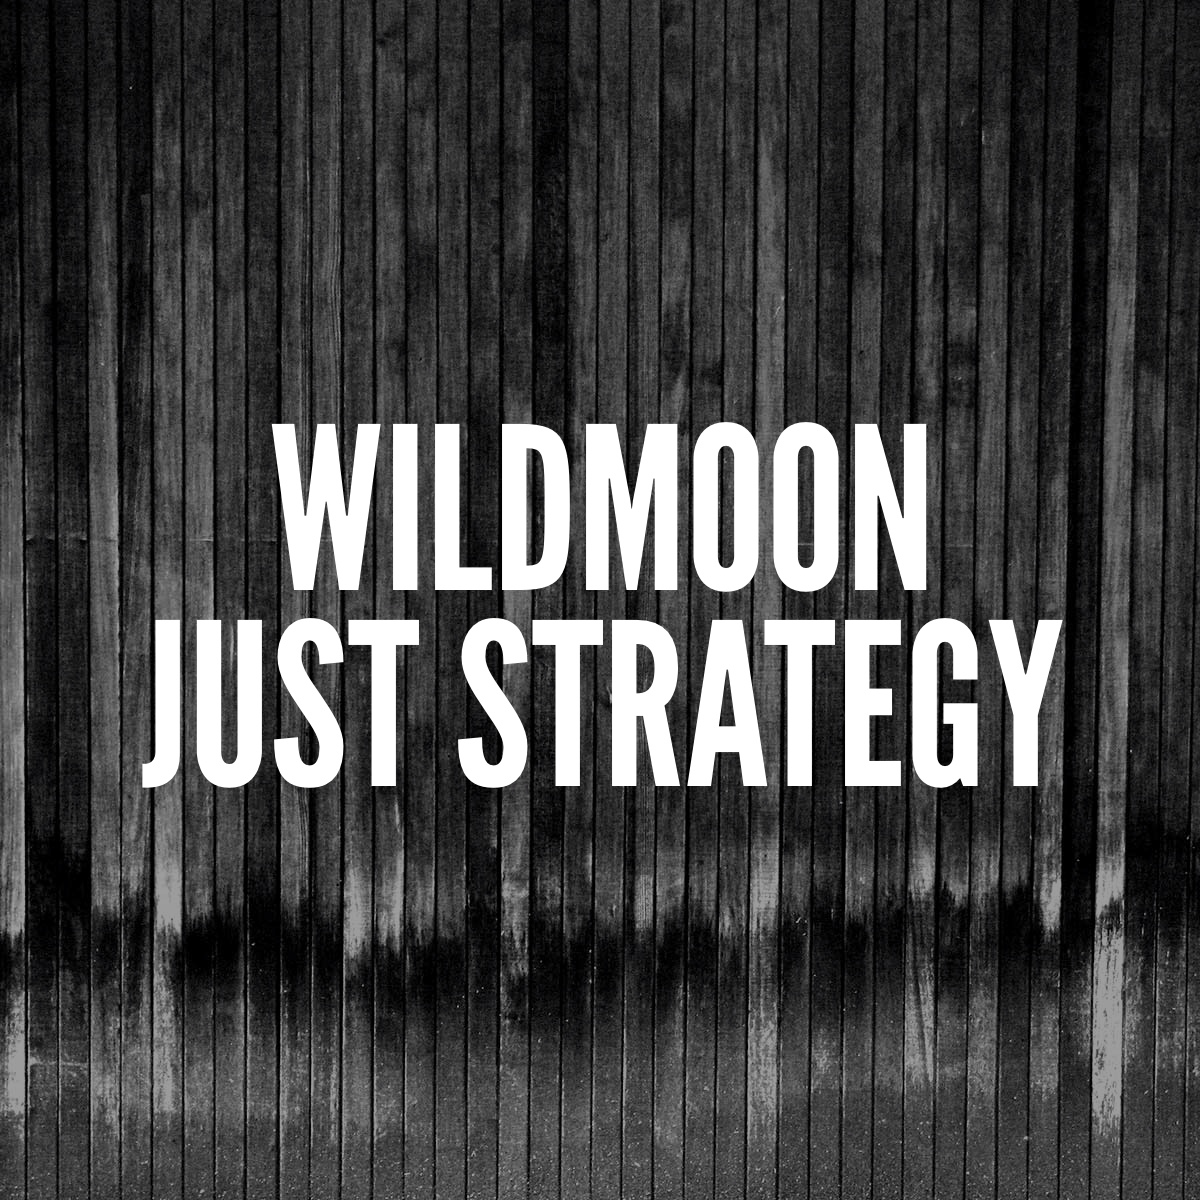 Let us work with you to develop a killer marketing strategy and system for your business...